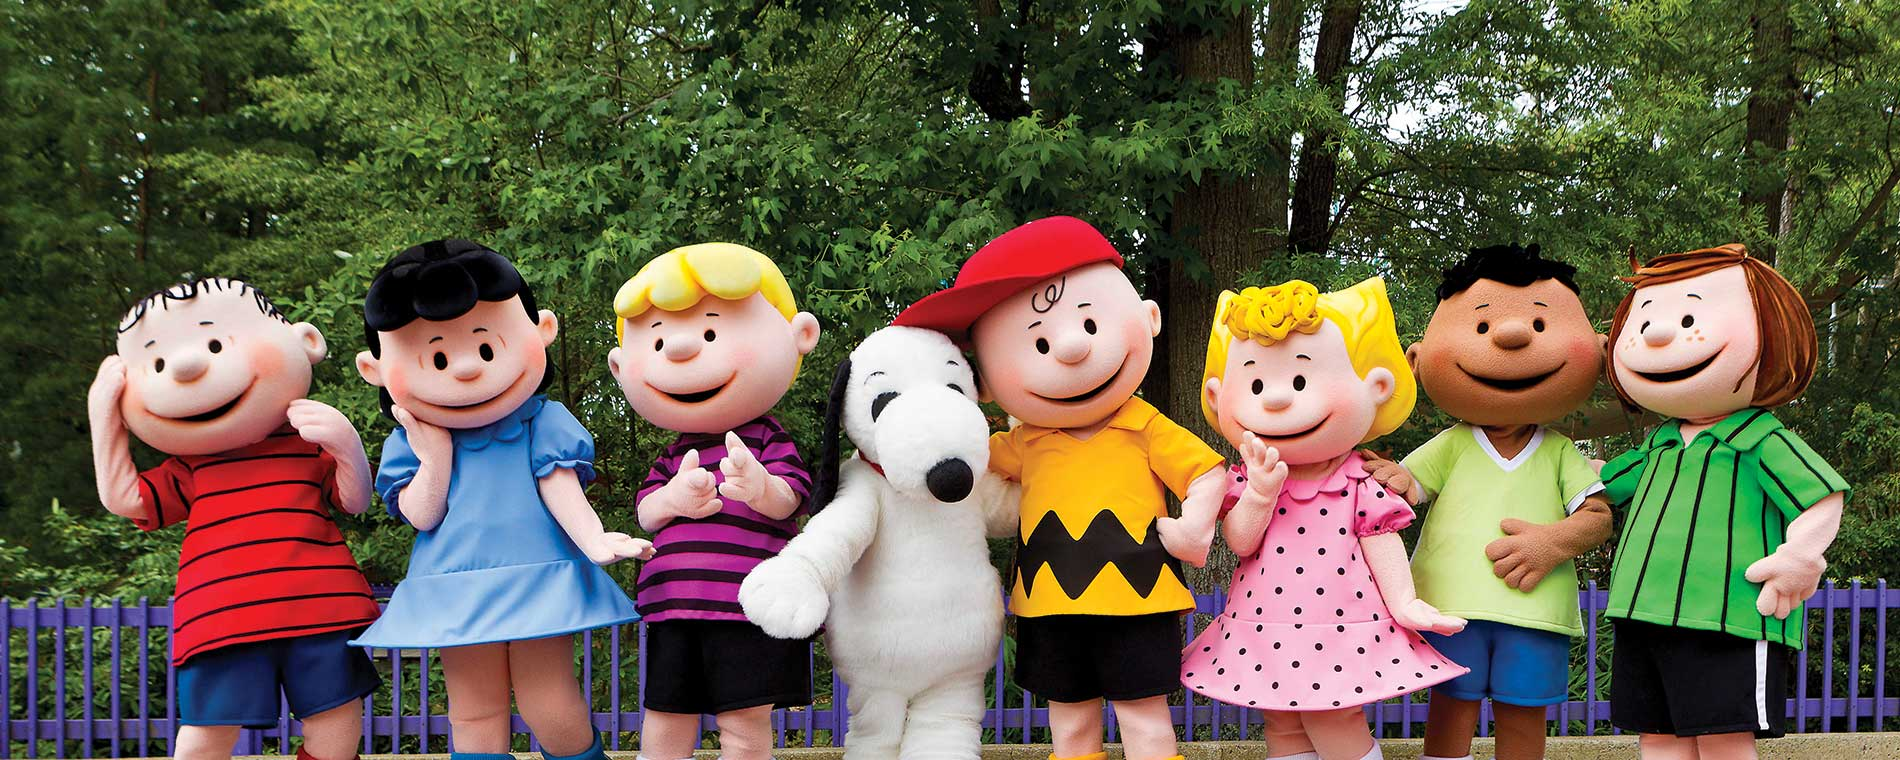 Peanuts Celebration at Carowinds